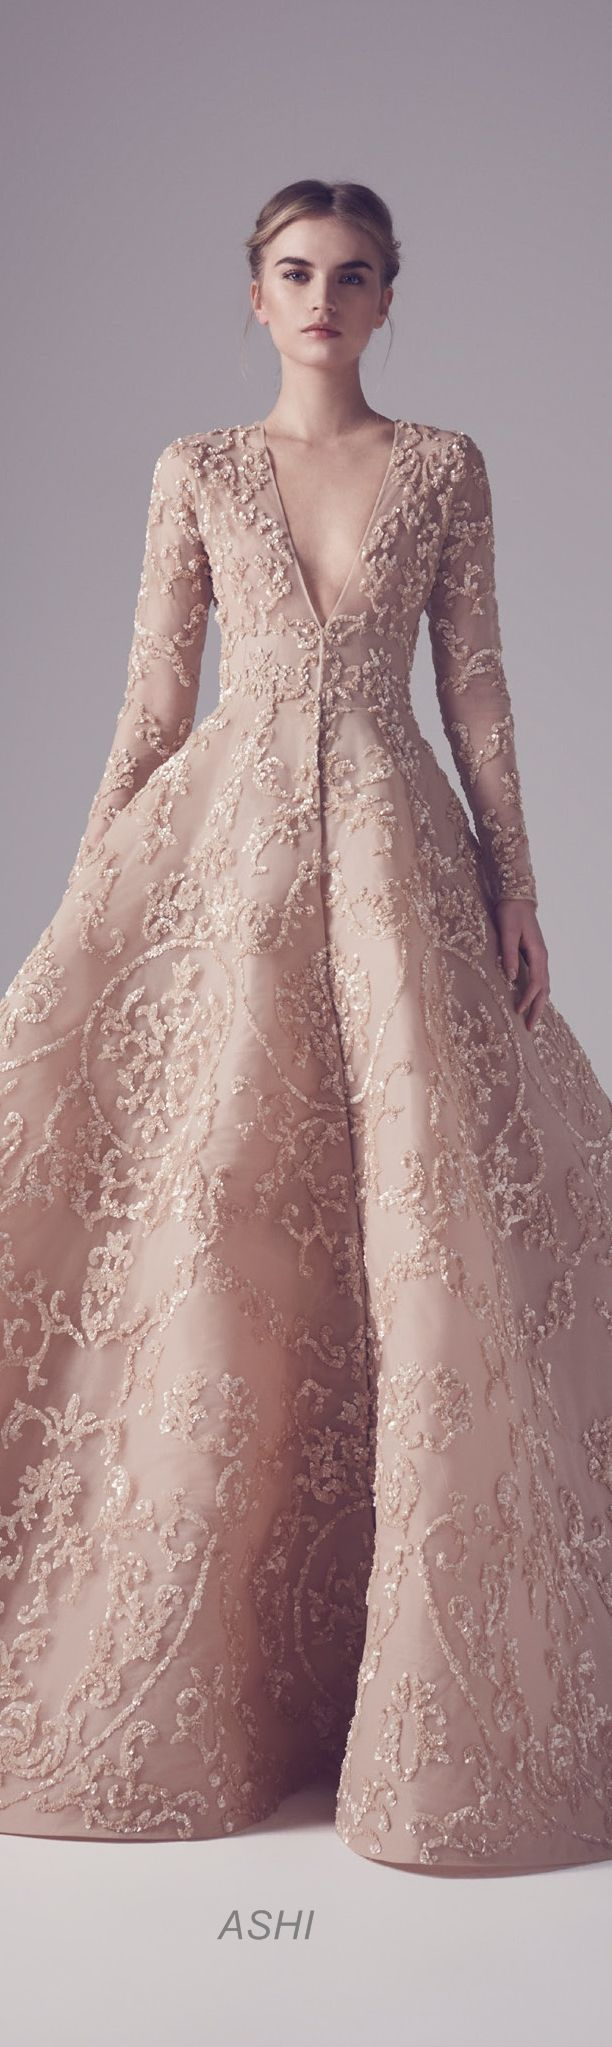 SPRING 2016 COUTURE Mohammed Ashi